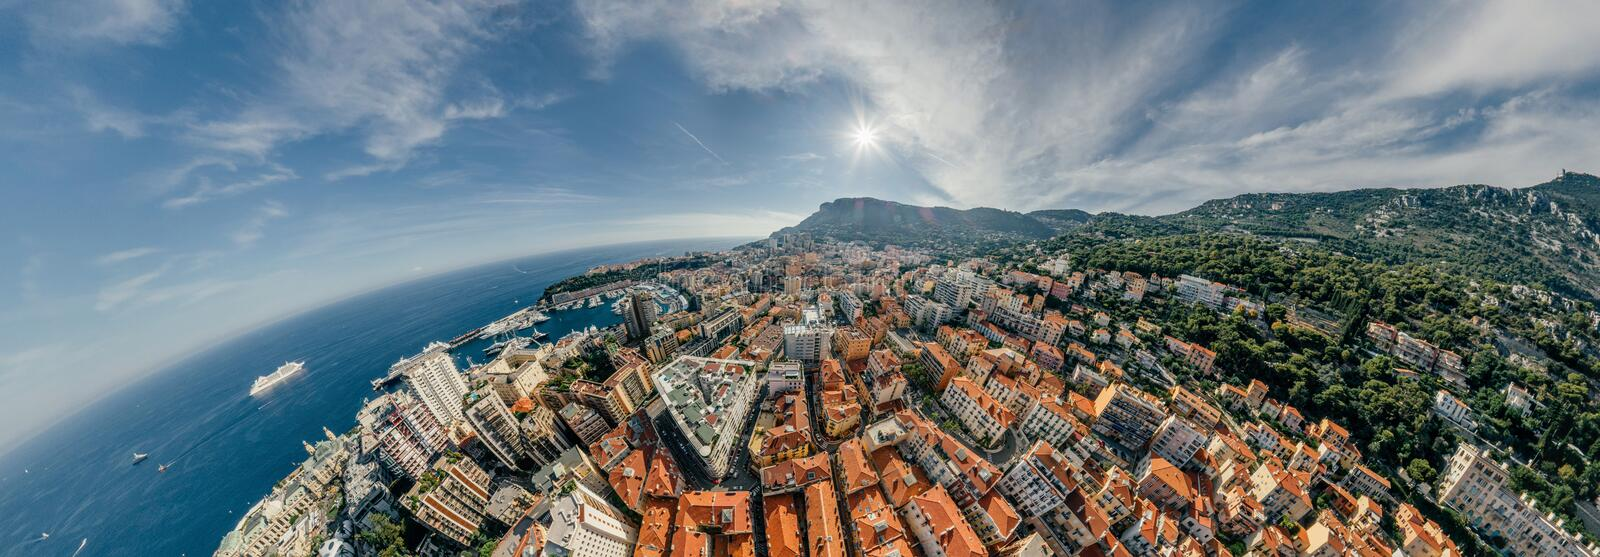 Mountains in Monaco Monte-Carlo city riviera Drone summer photo Air 360 vr virtual reality drone panorama. Sphere Panorama Summer Sea Coastline in Monaco Air stock photos